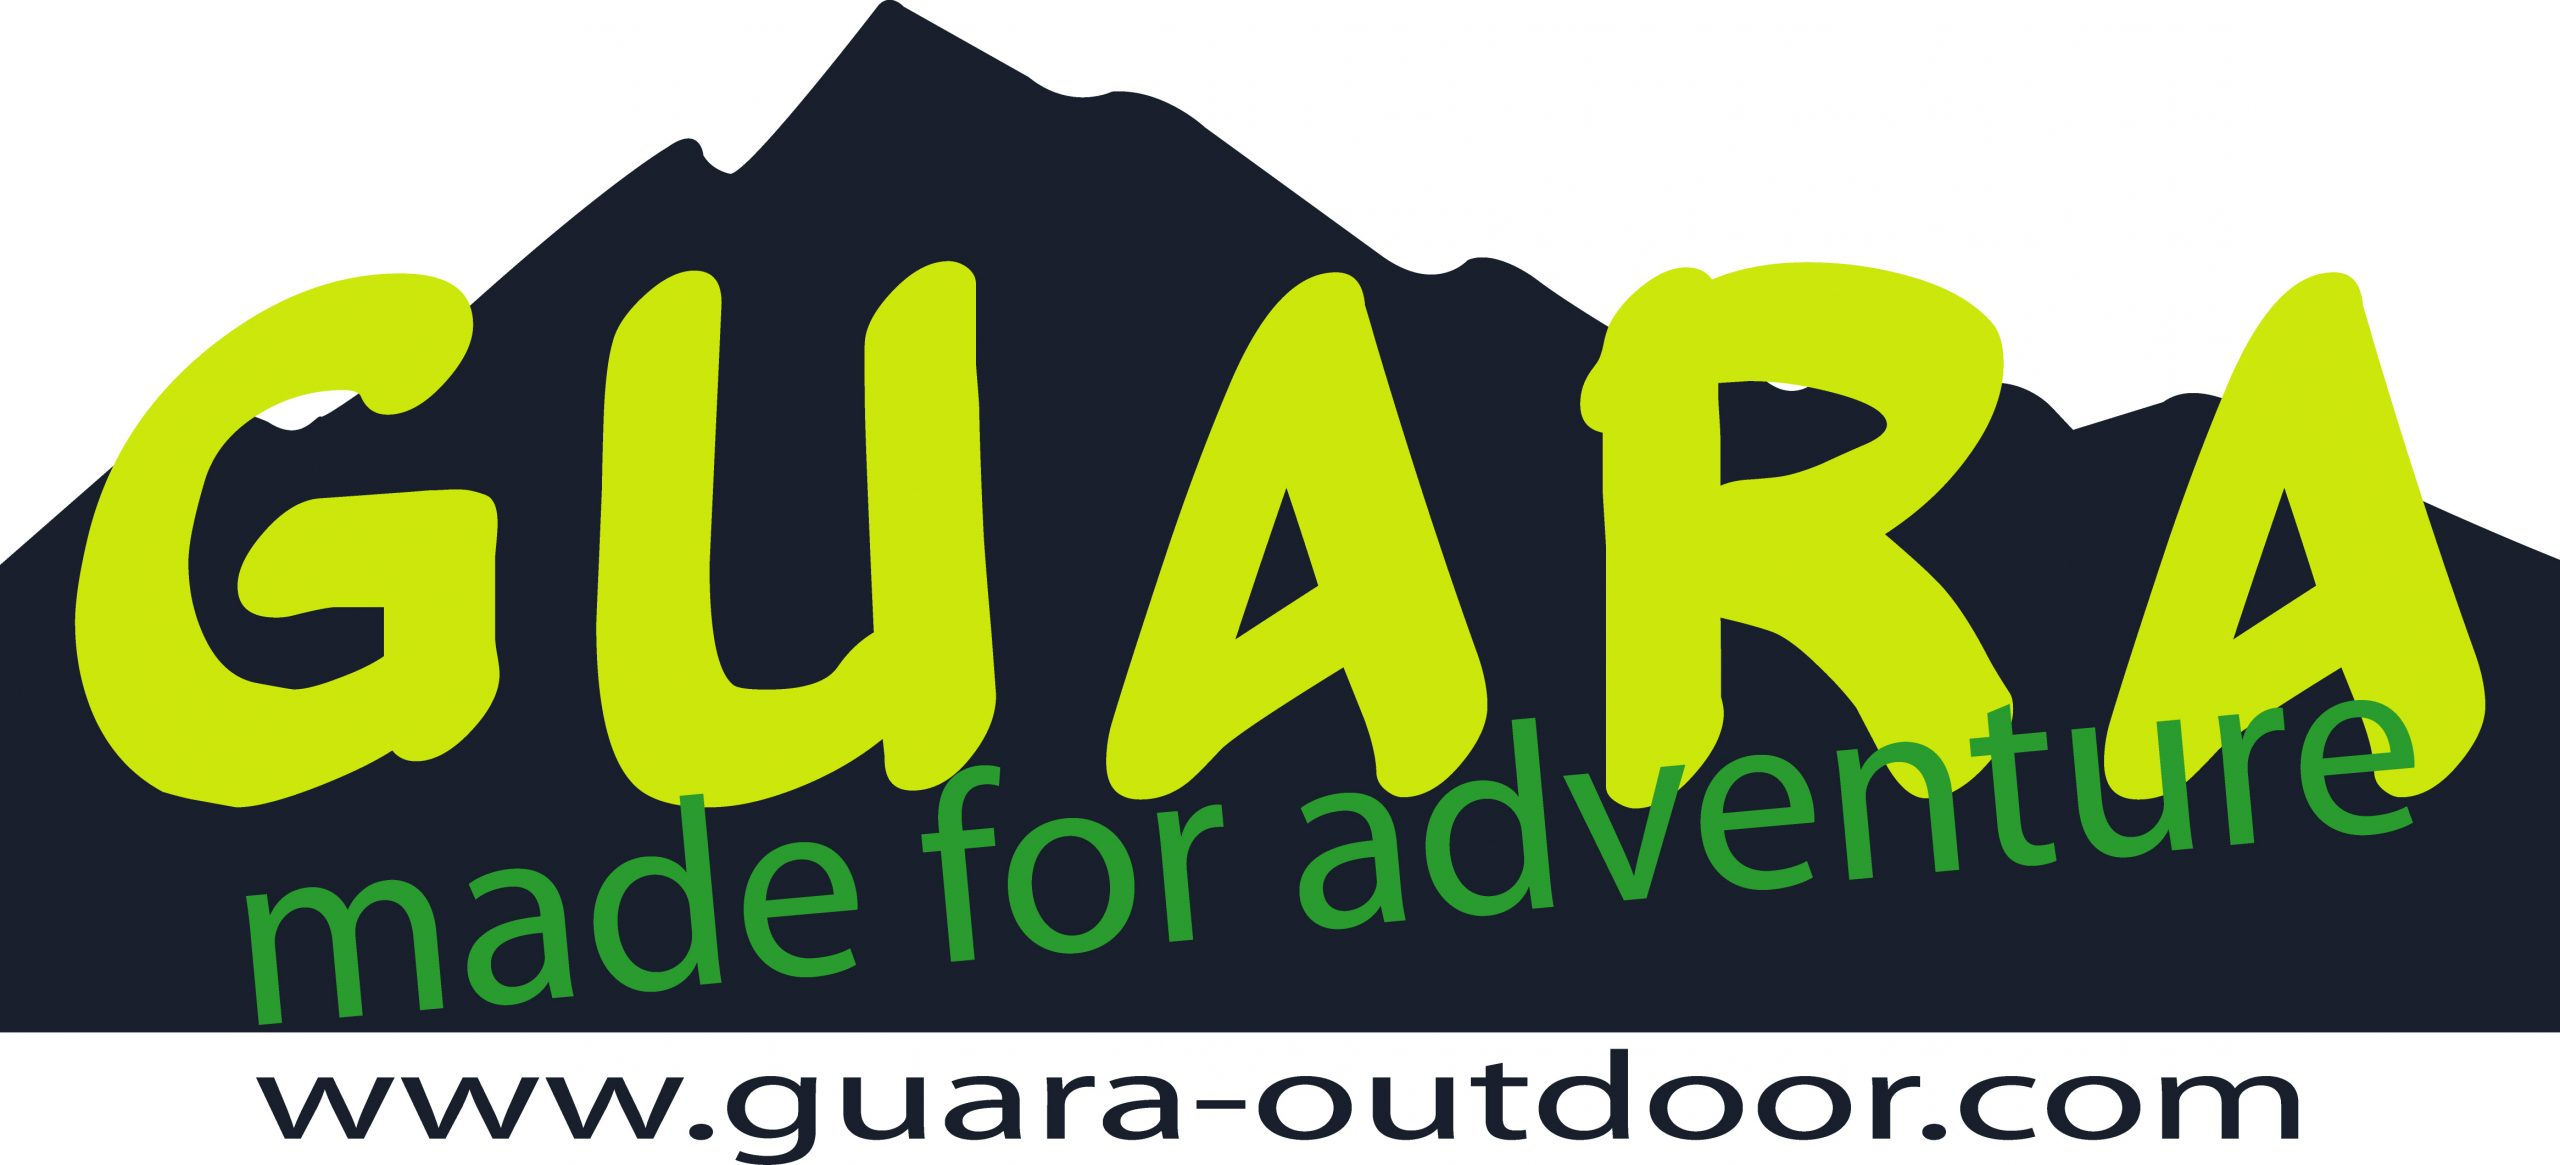 logo-guara-outdoor